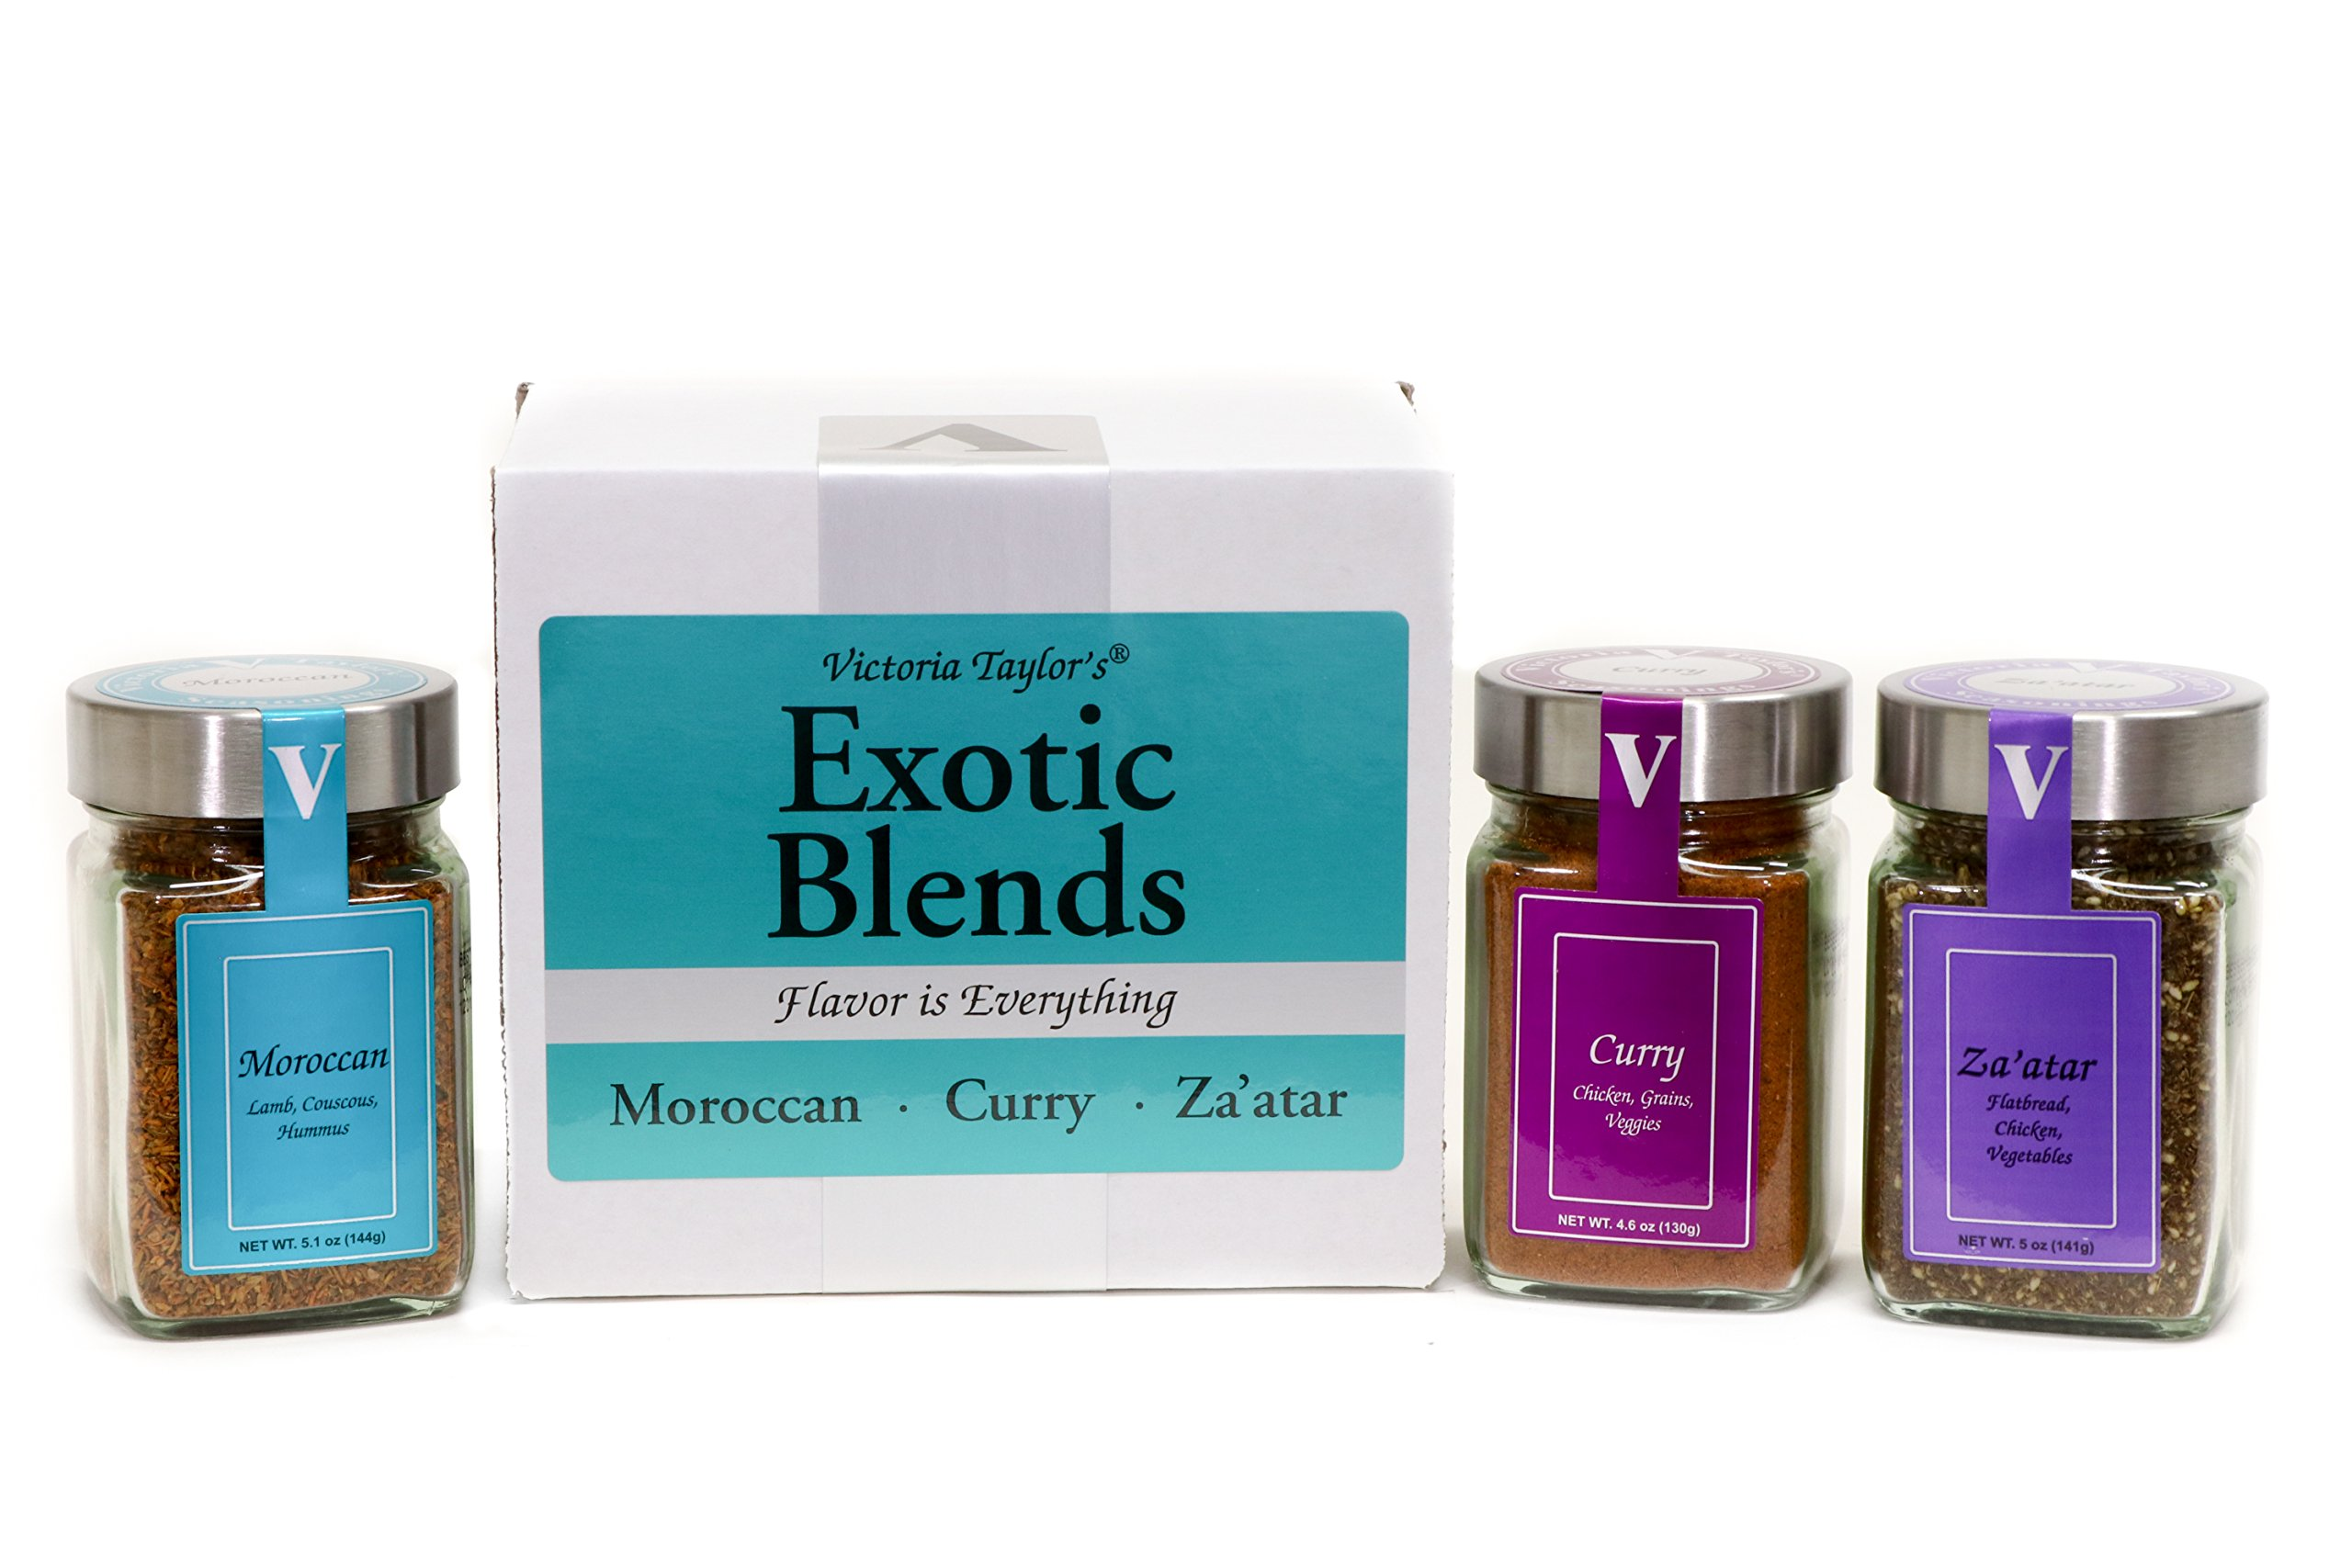 Exotic Blends - 3 spice blends from around the world. by Victoria Taylor's